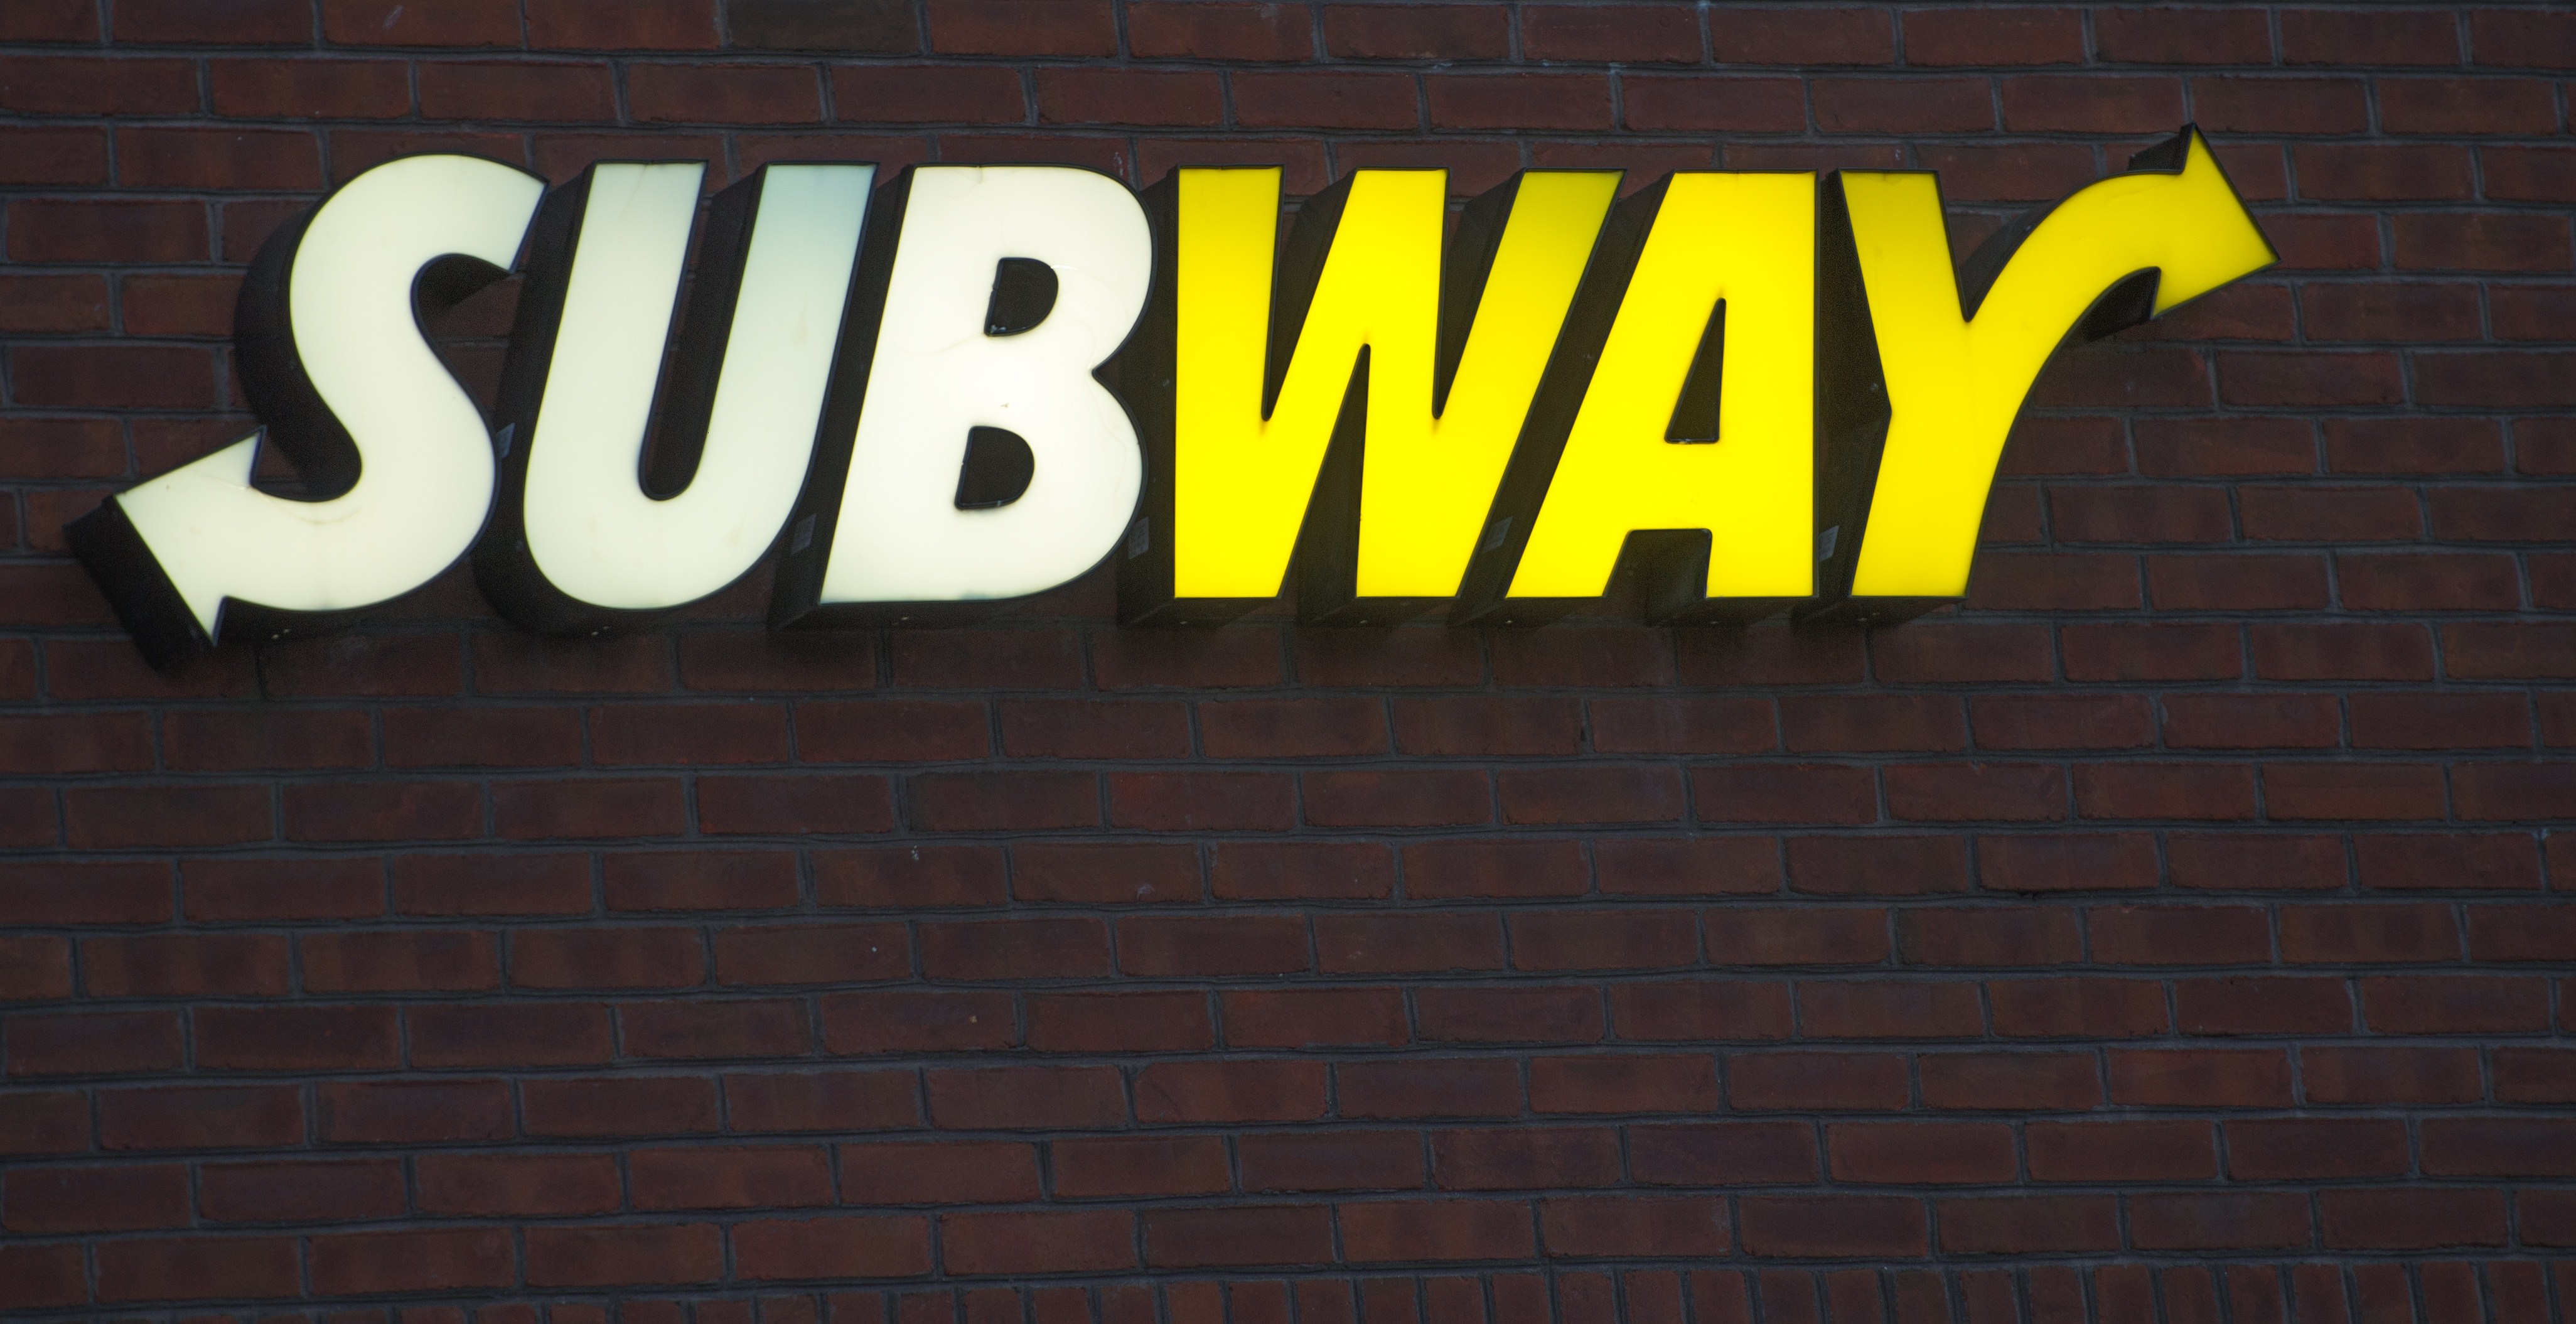 The Subway restaurant logo is seen in Chantilly, Virginia on January 2, 2015.